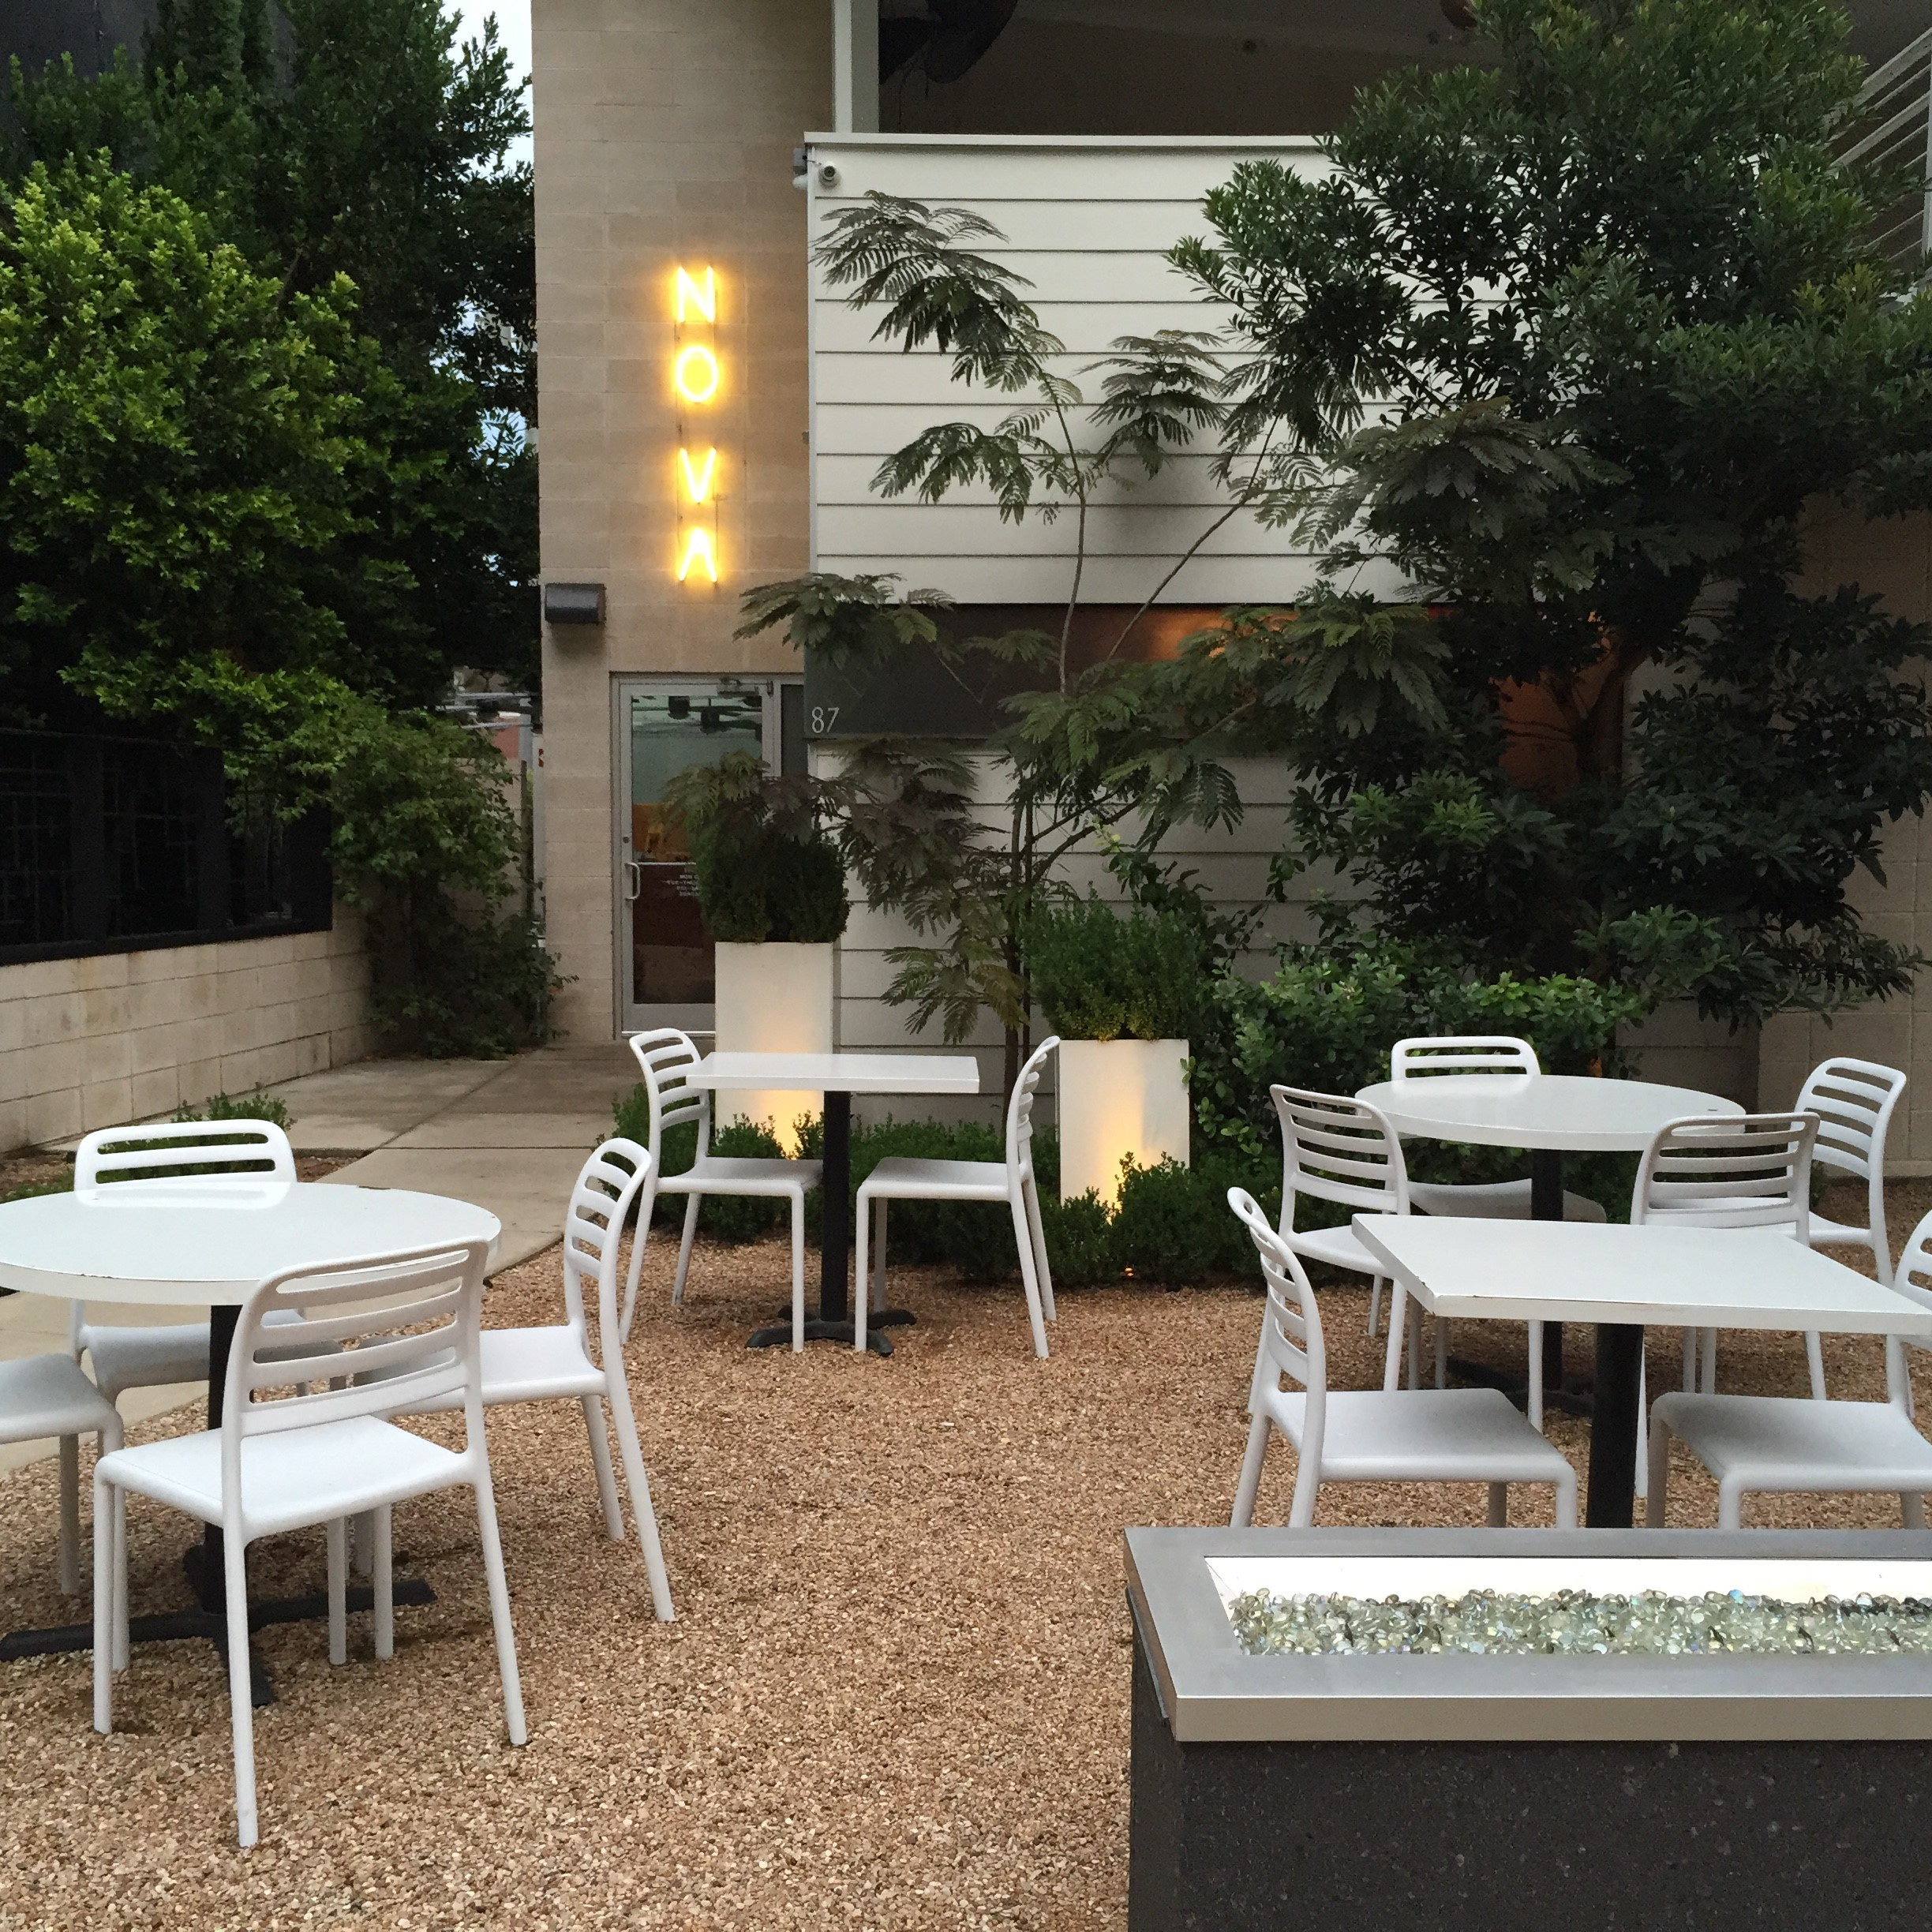 Restaurantfurniture updates resin chairs at atx restaurant